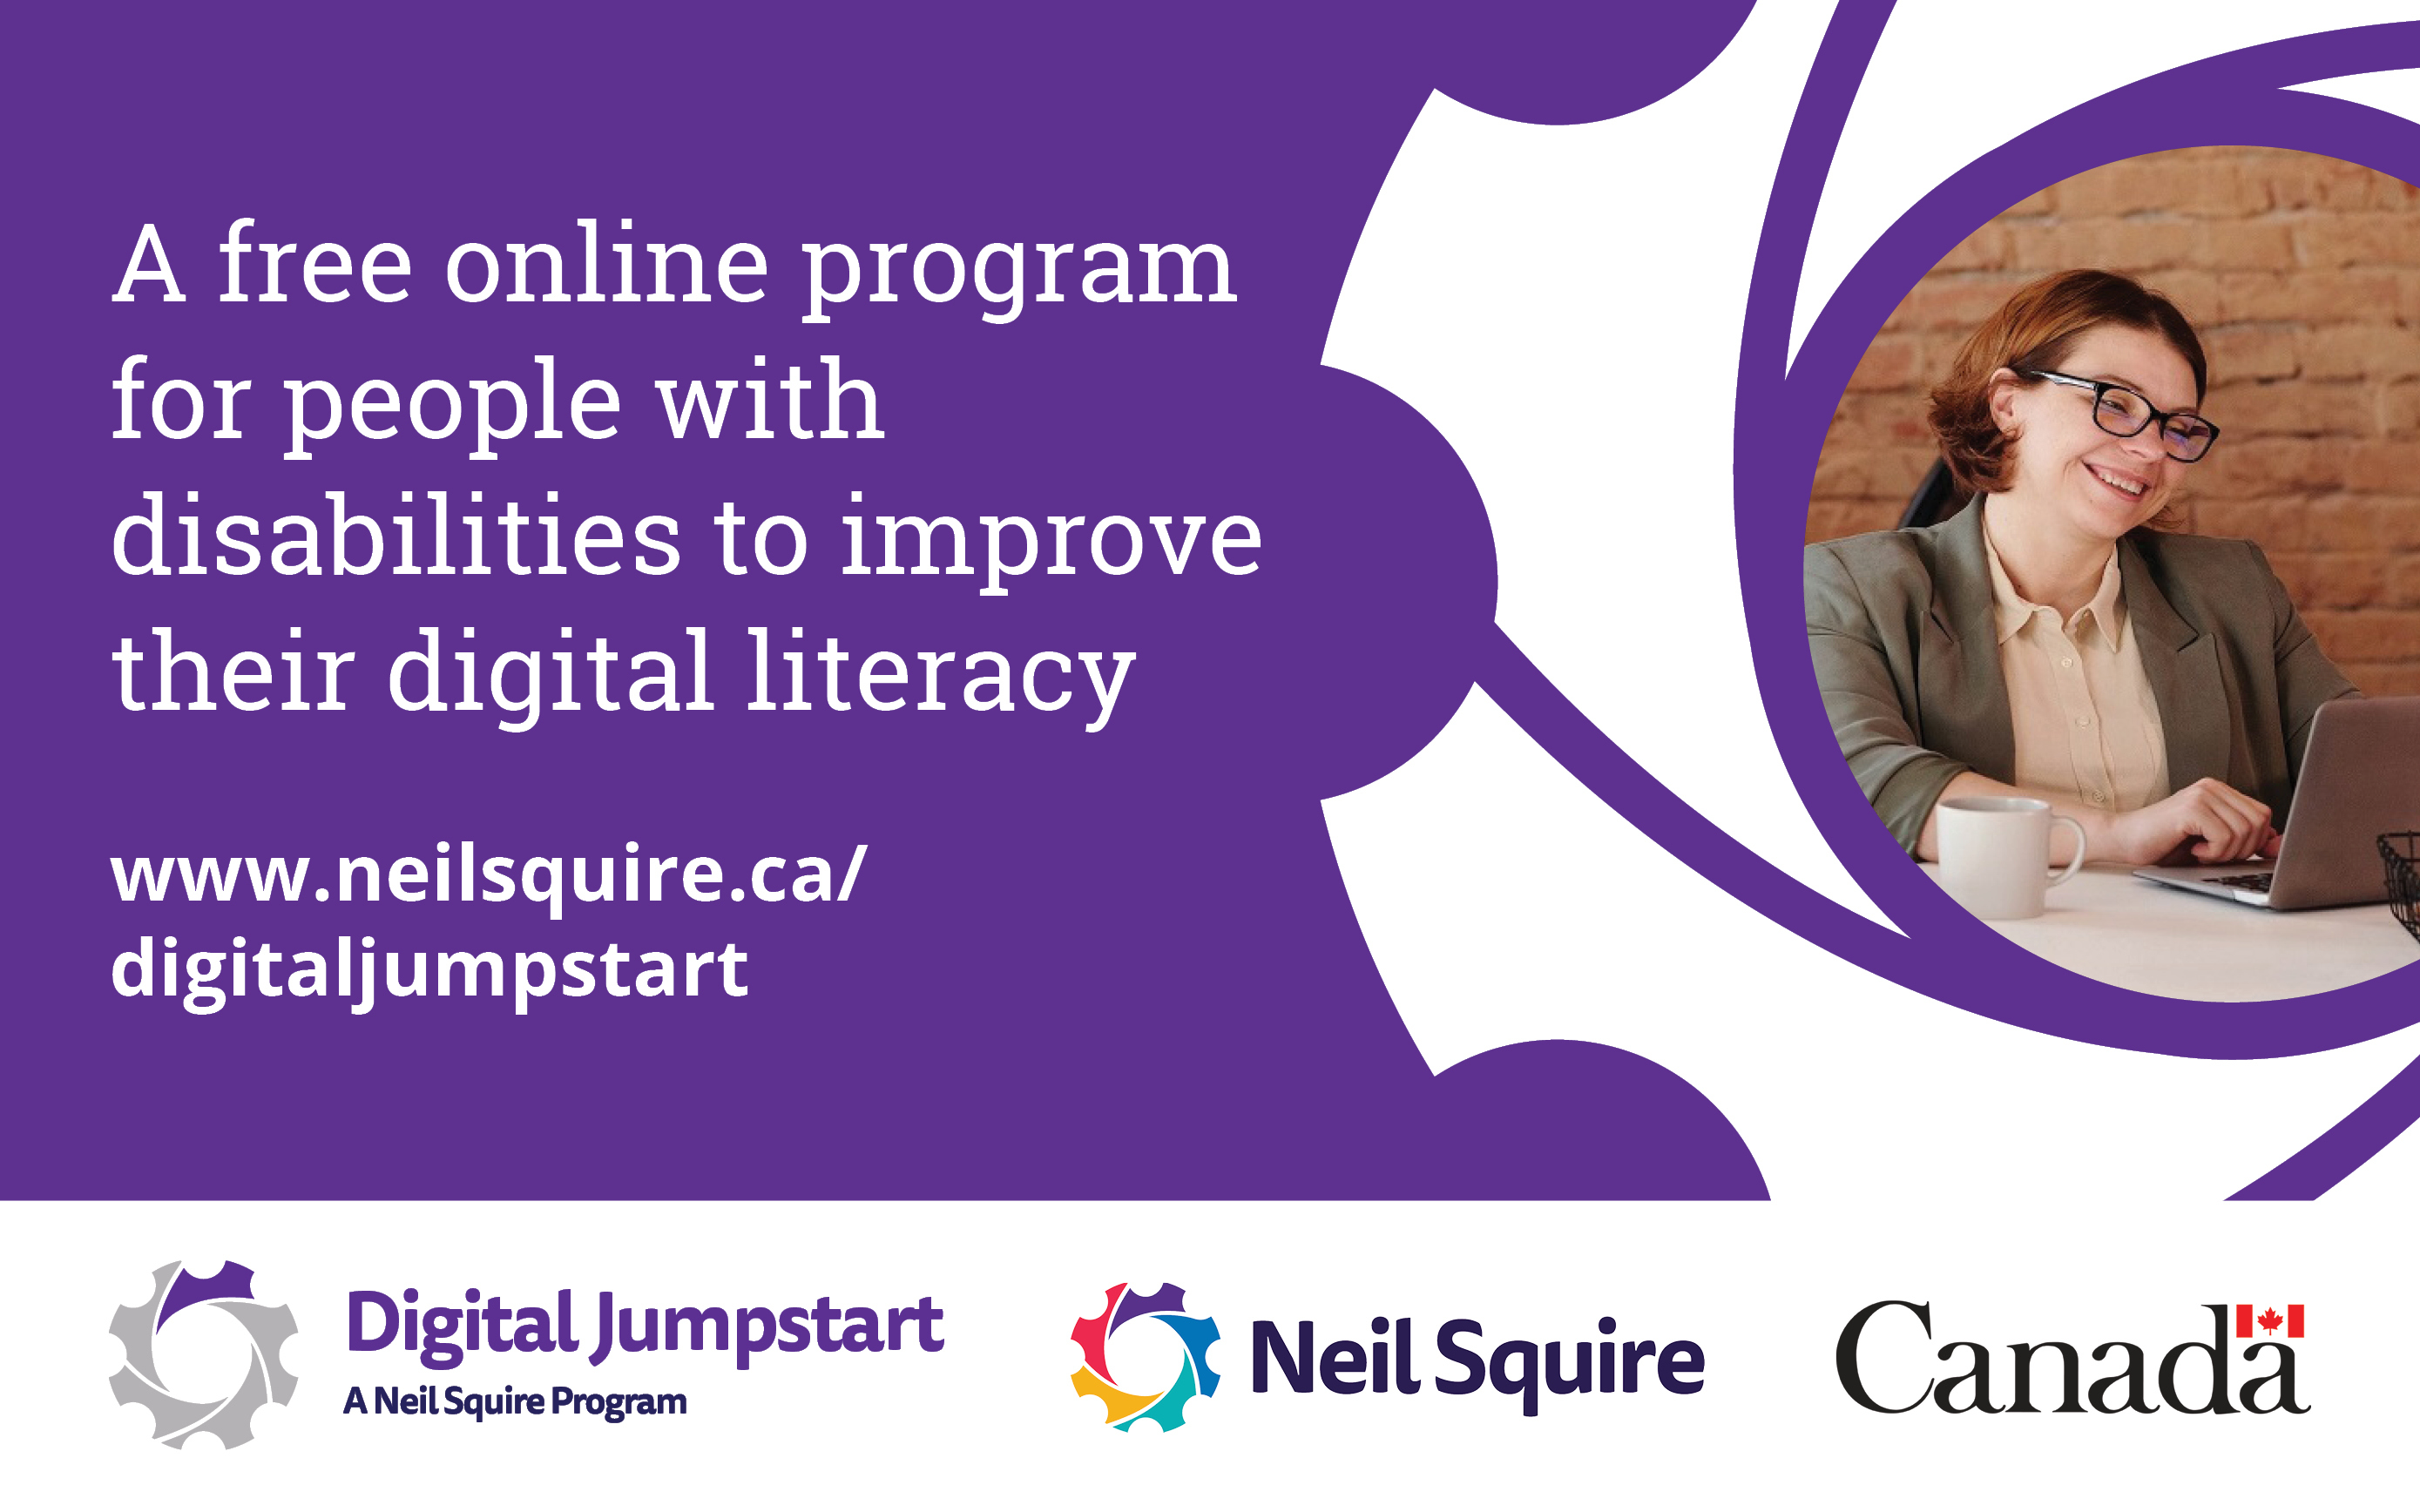 visit our Digital Jumpstart page